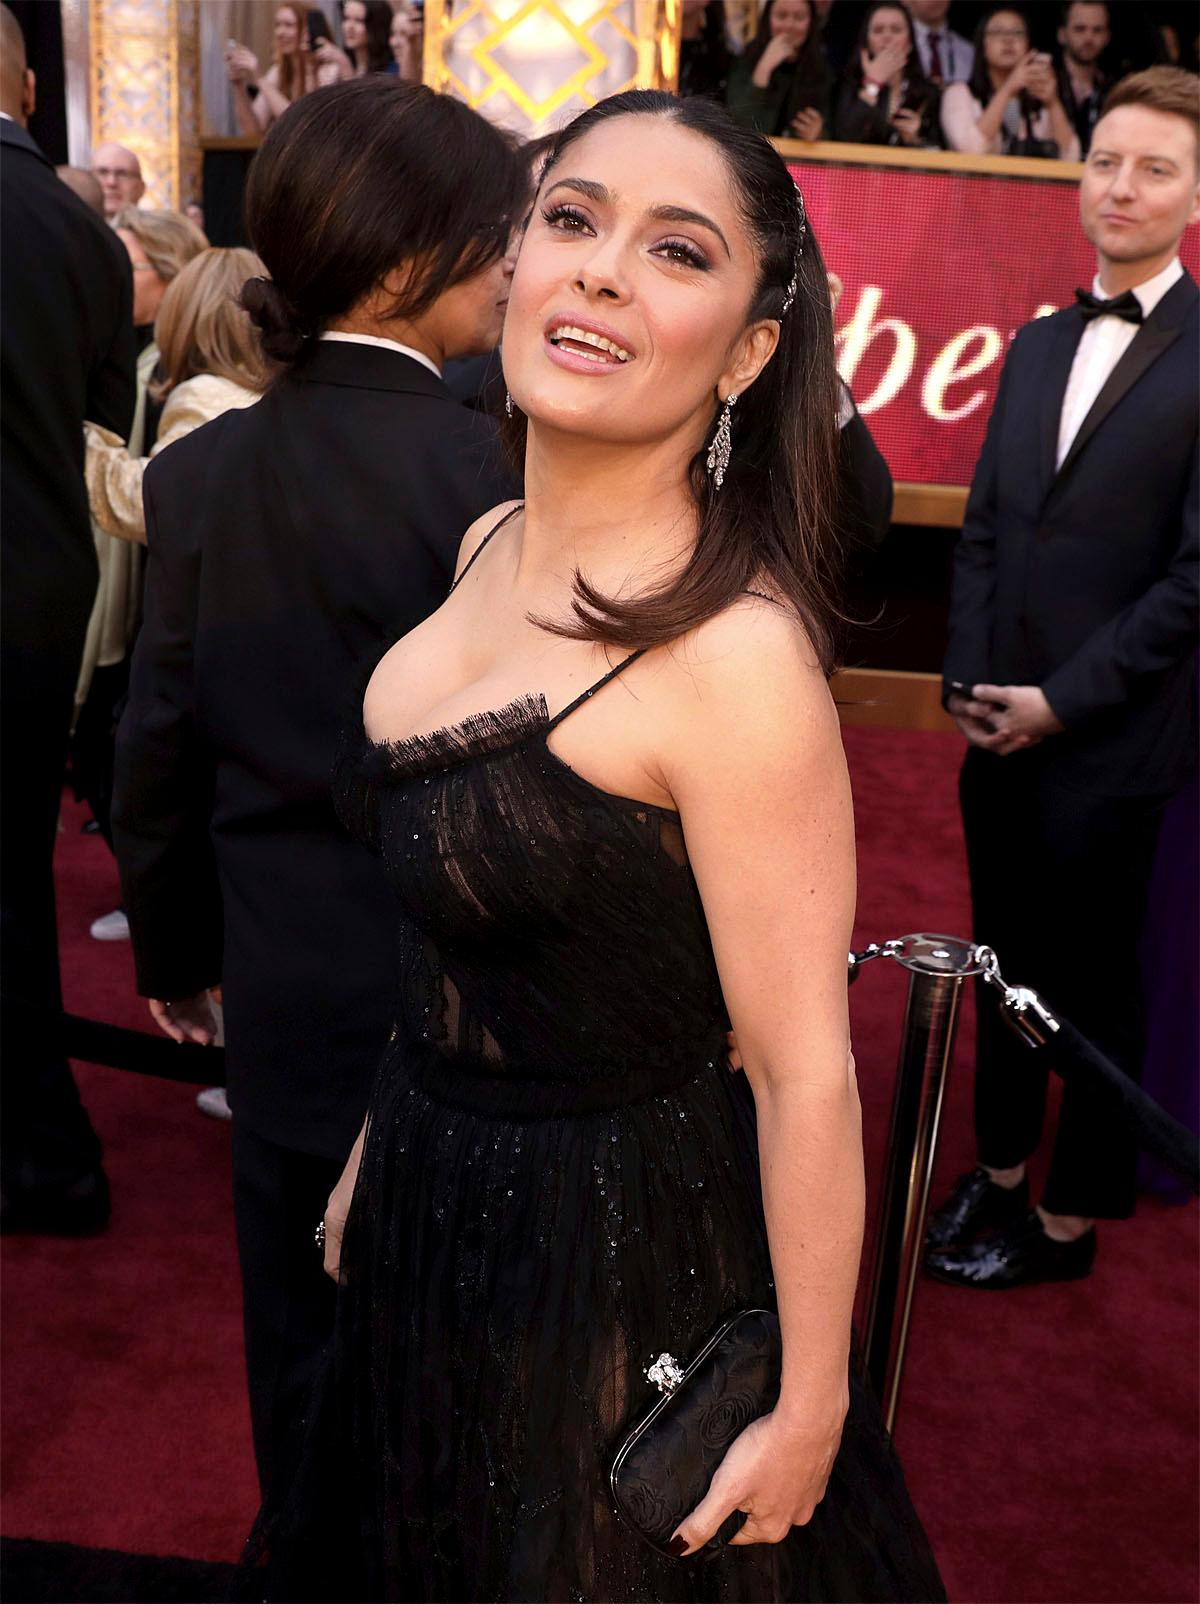 Salma Hayek arrives at the Oscars on Sunday, Feb. 26, 2017, at the Dolby Theatre in Los Angeles. (Photo by Matt Sayles/Invision/AP)